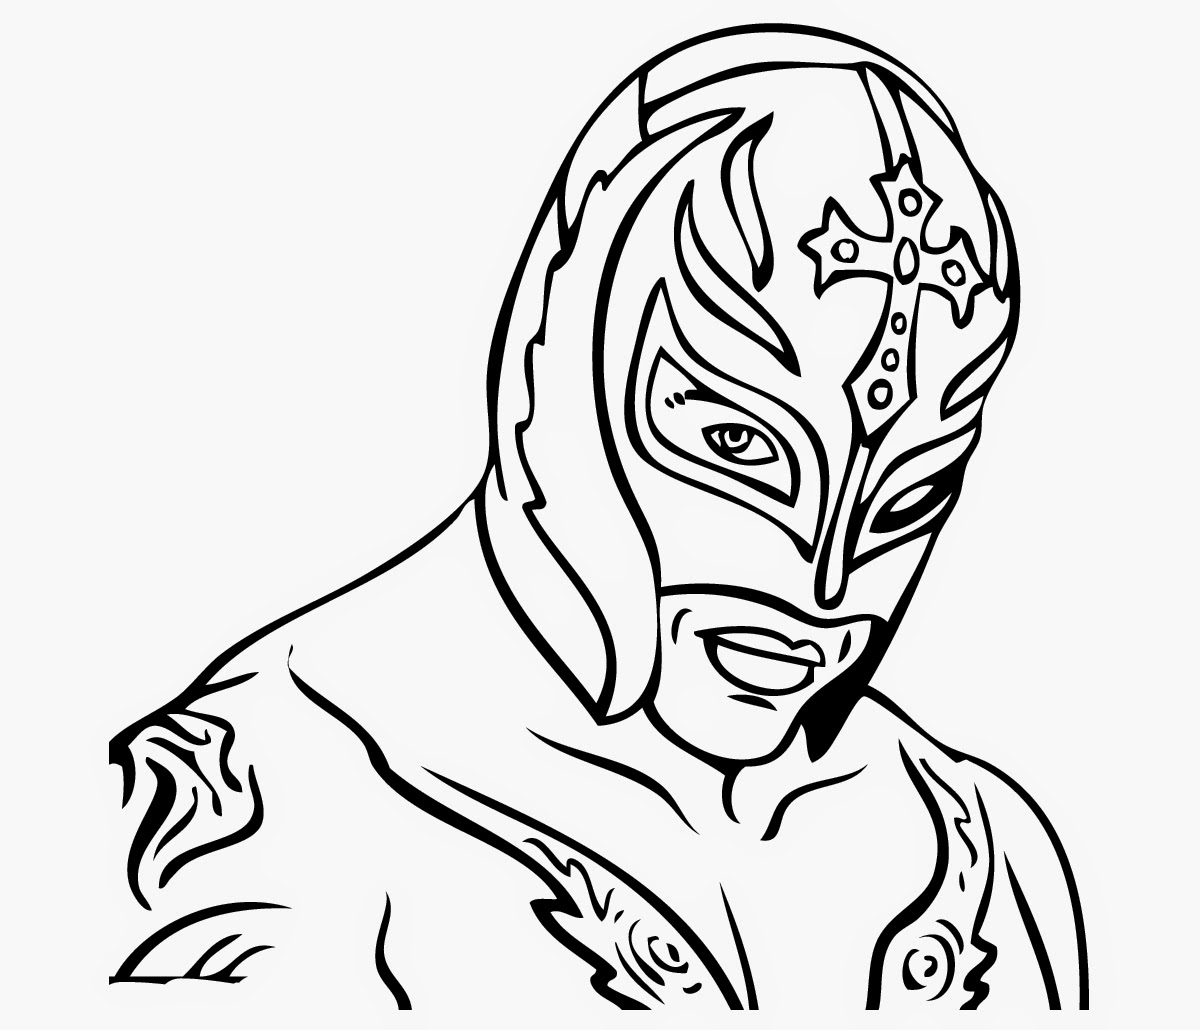 rey mysterio coloring pages picture of rey mysterio coloring page picture of rey pages mysterio coloring rey